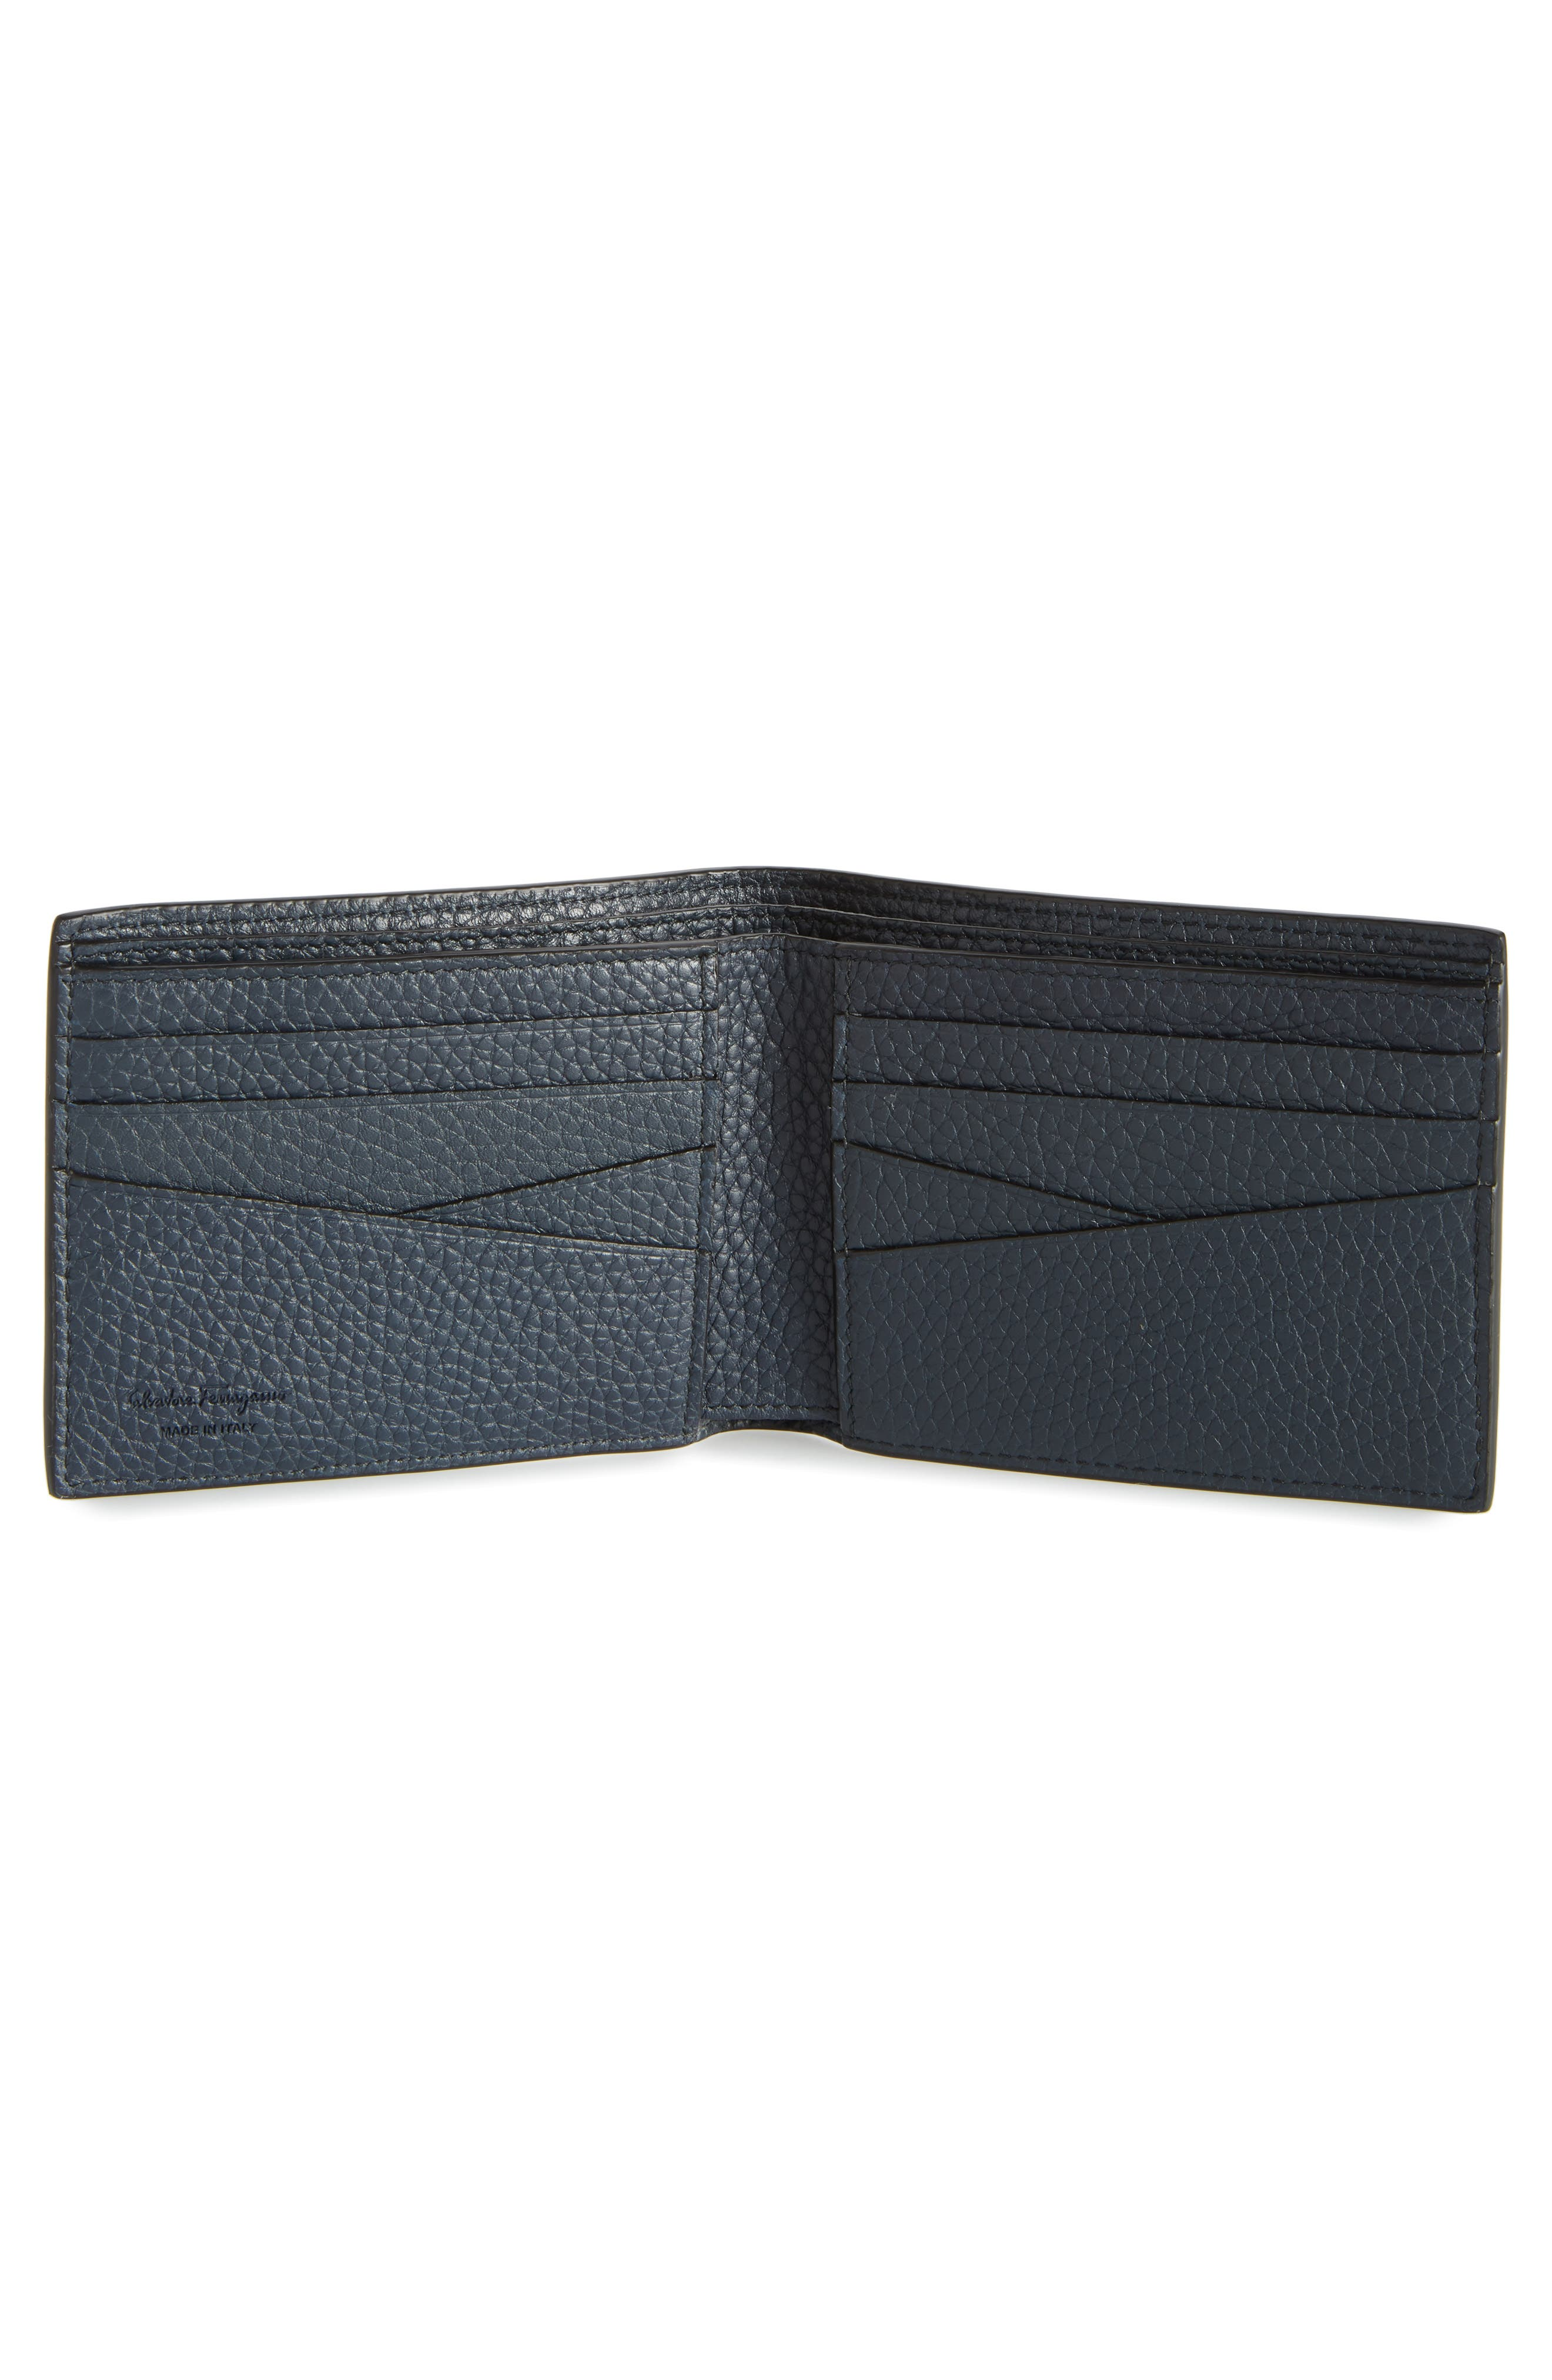 New Firenze Leather Wallet,                             Alternate thumbnail 2, color,                             NERO